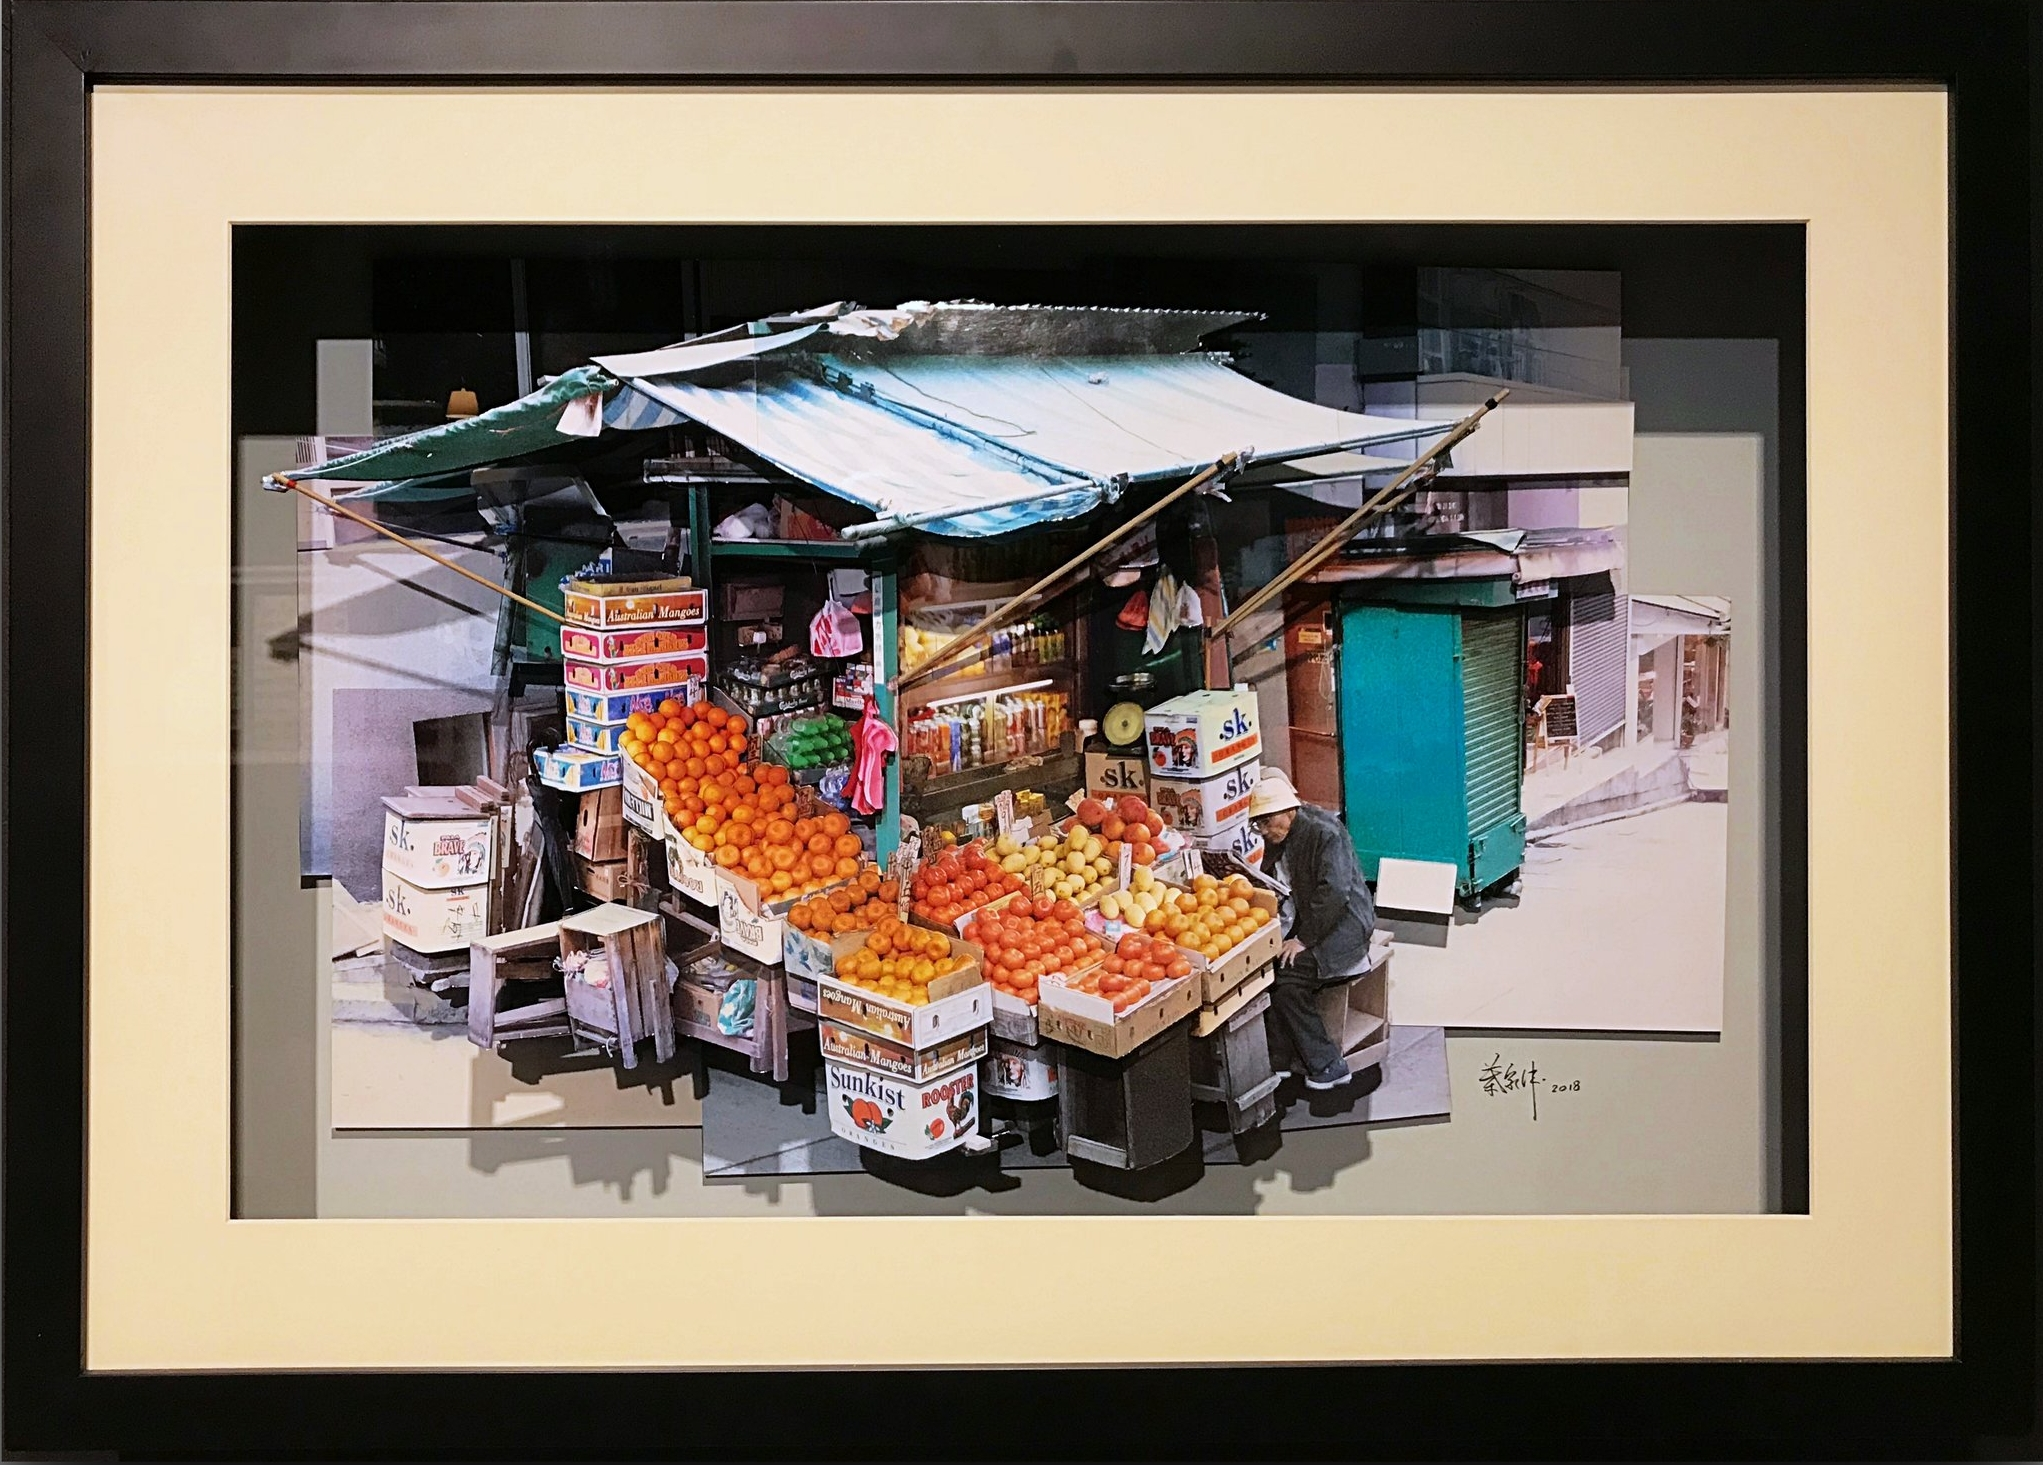 葉家偉 Alexis Ip, 水果檔·中環,  Fruit Stall (Central, Hong Kong) , 2018, open edition FOTOMO artwork (mixed media collage)m framed to H 45 x 26 x 7 cm, HK$ 11,000